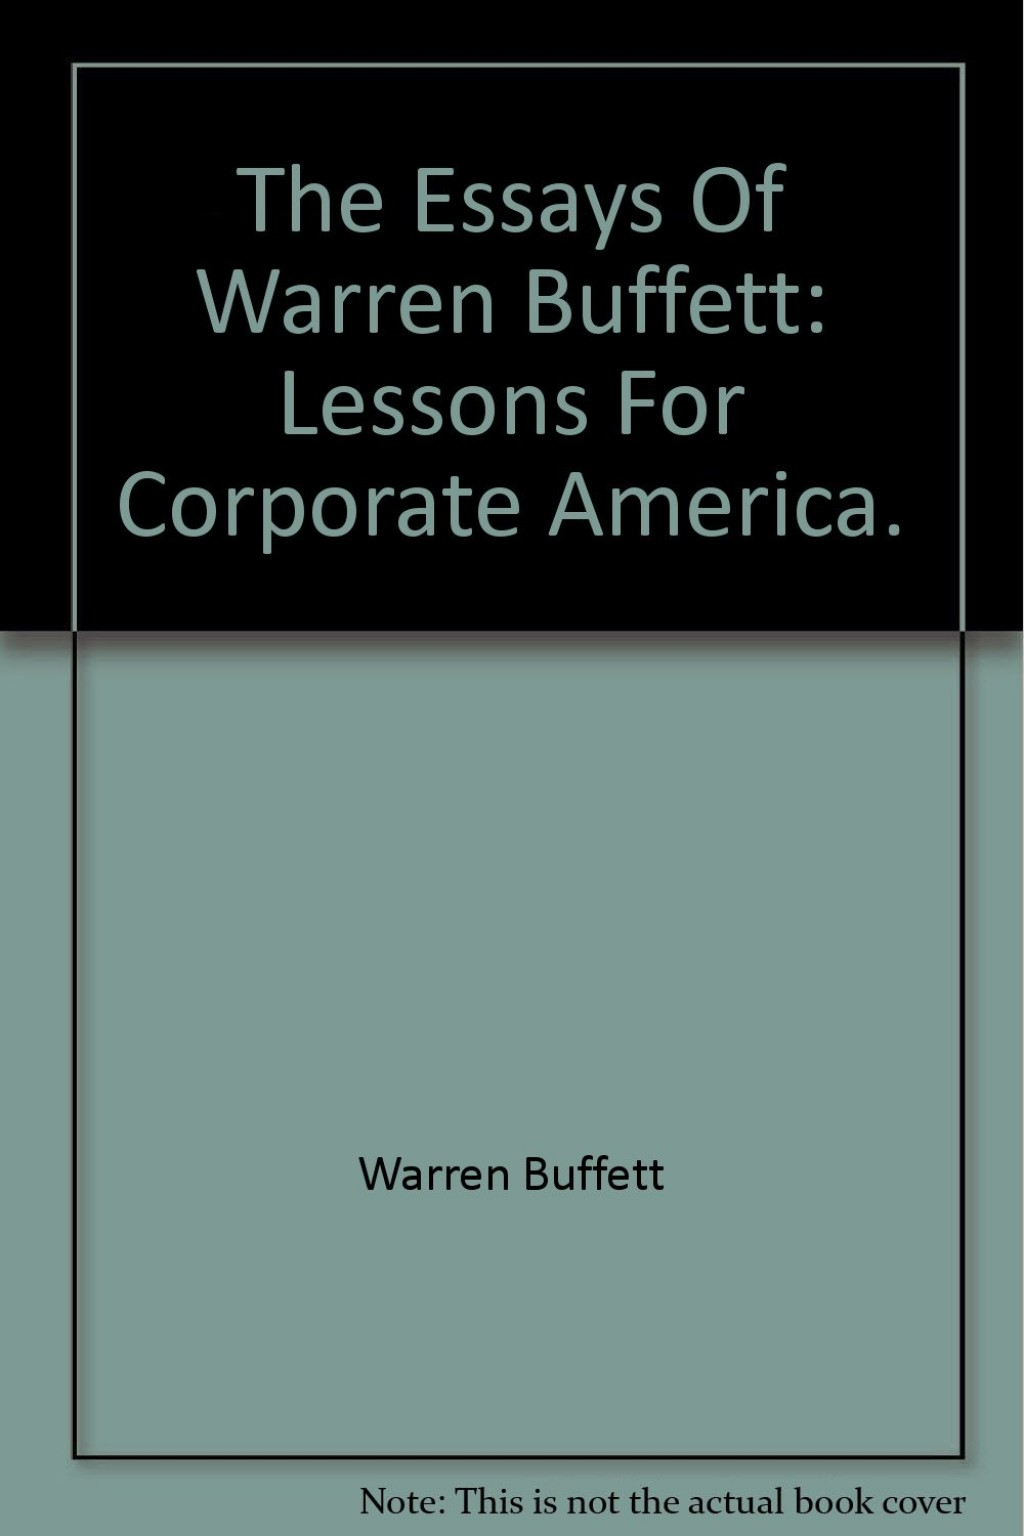 015 61wo12biiixl The Essays Of Warren Buffett Lessons For Investors And Managers Essay Striking 4th Edition Free Pdf Large